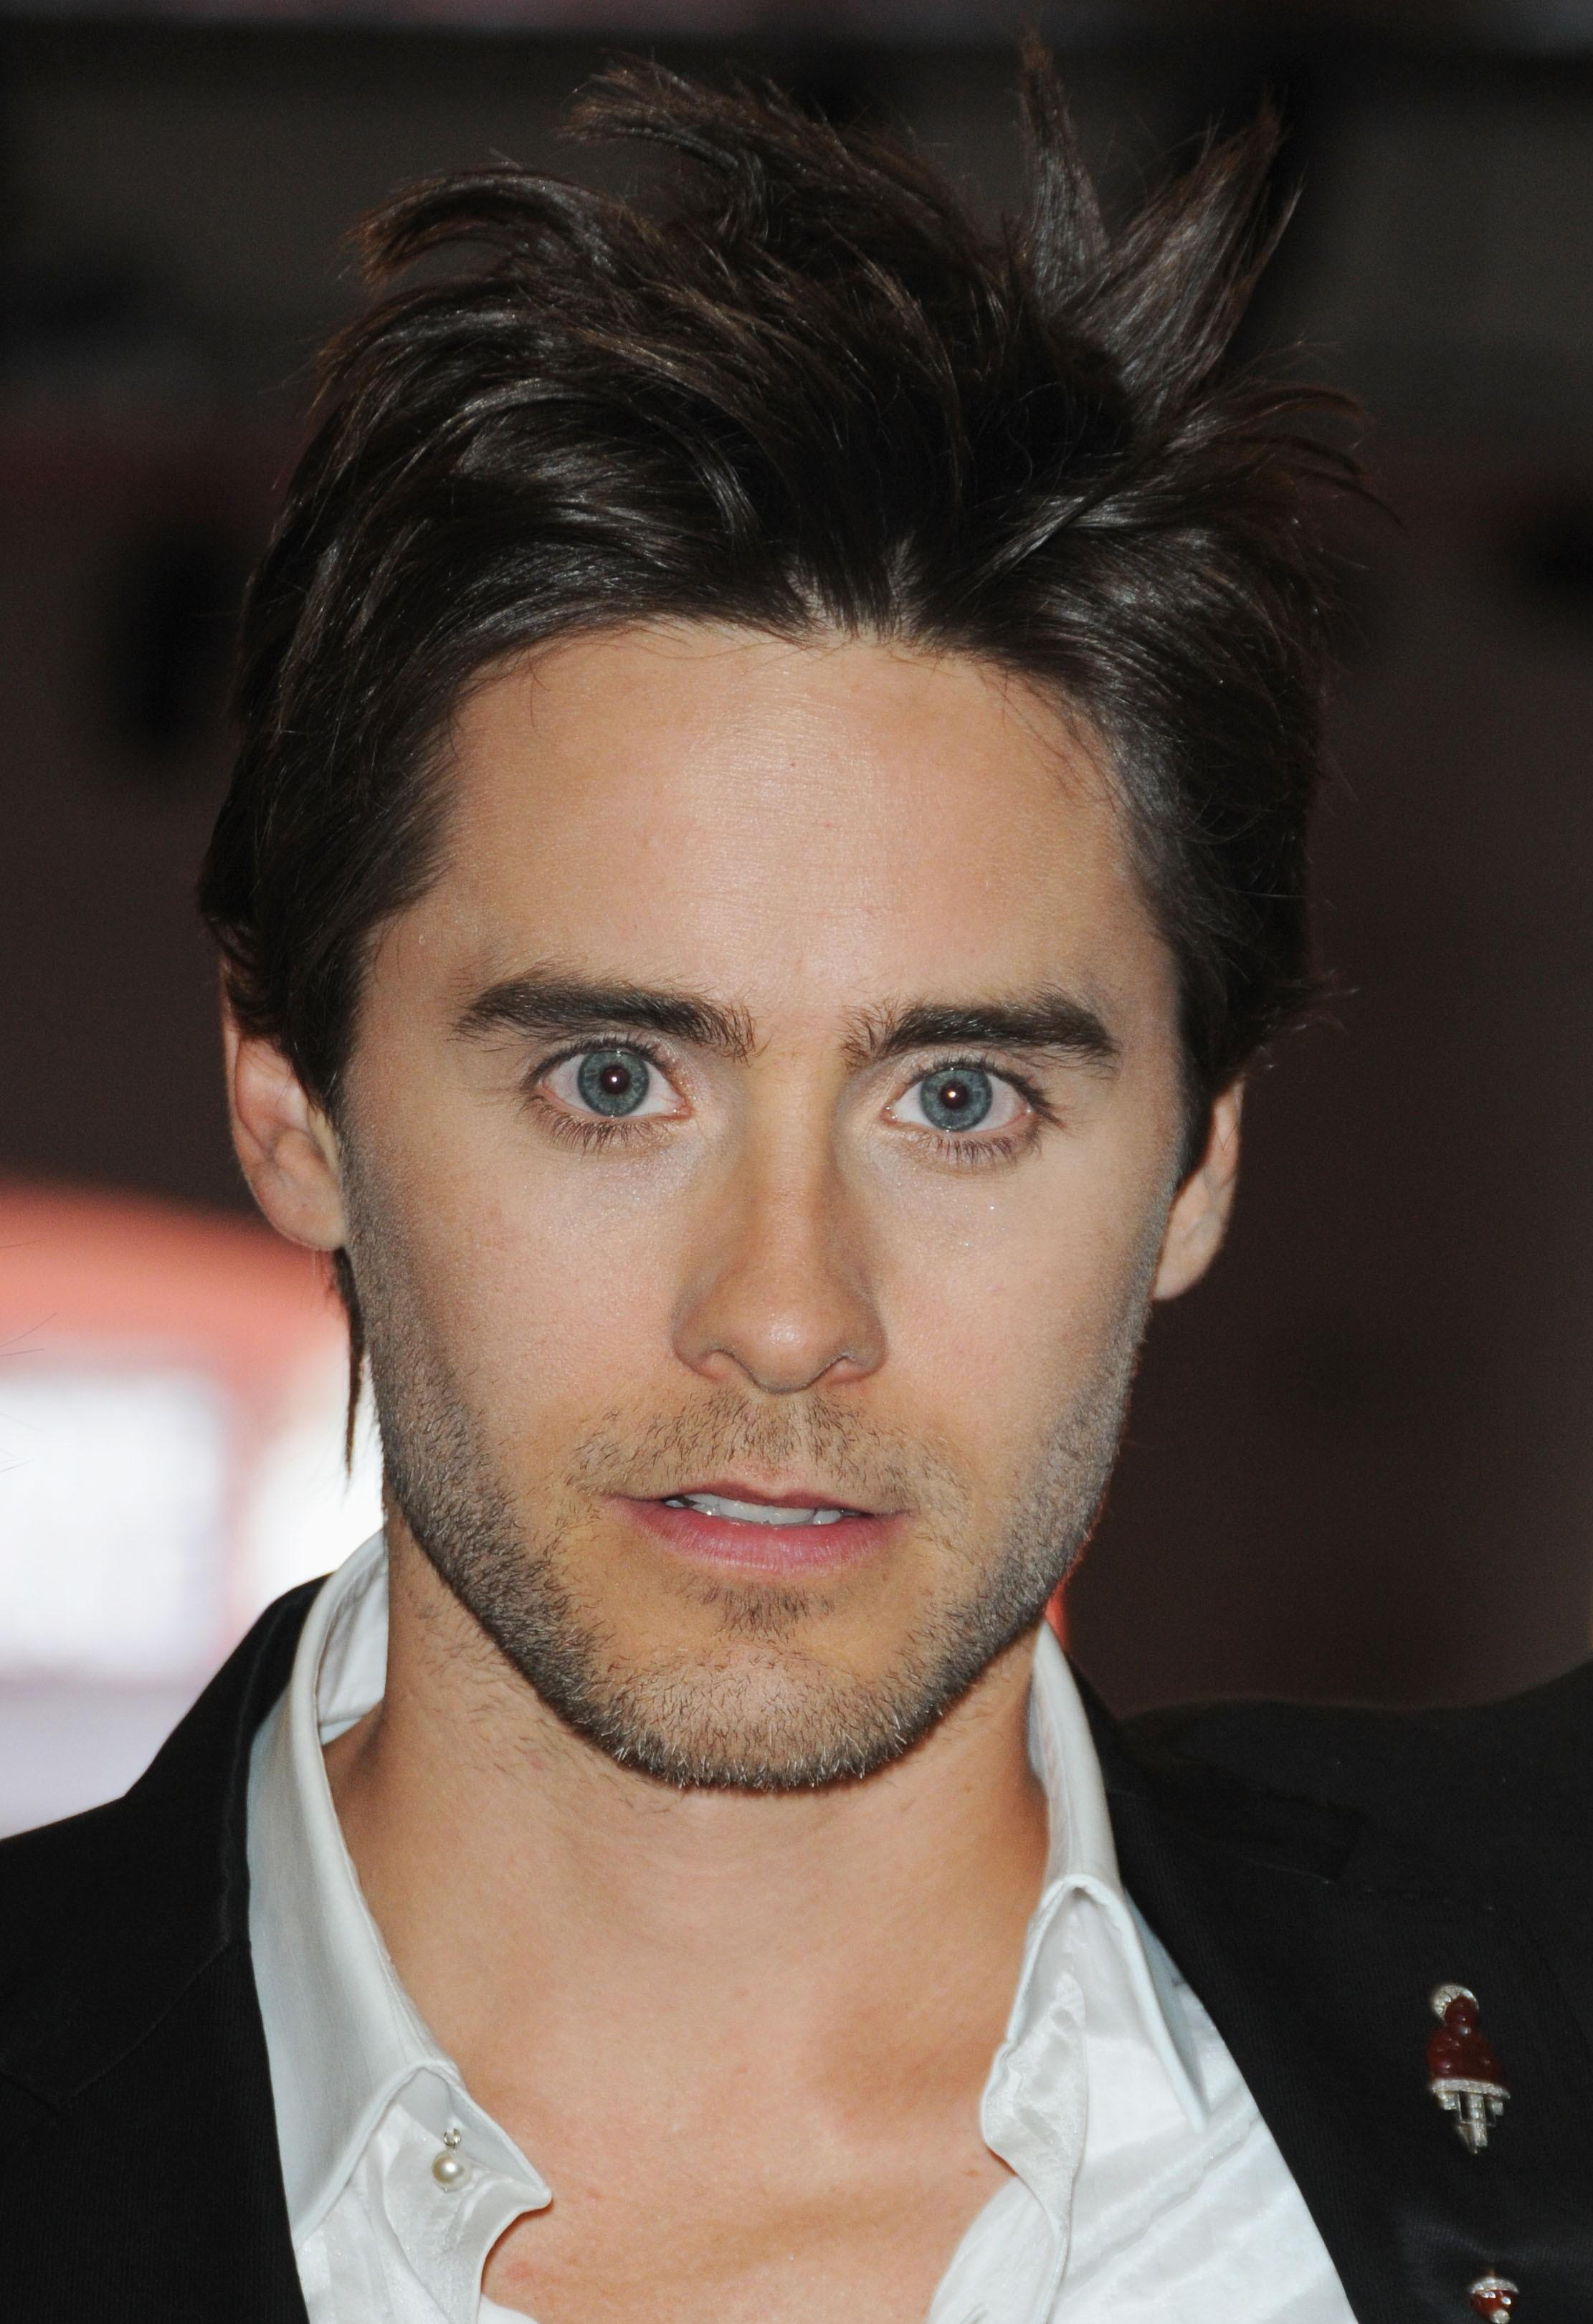 Jared-Leto-photos1